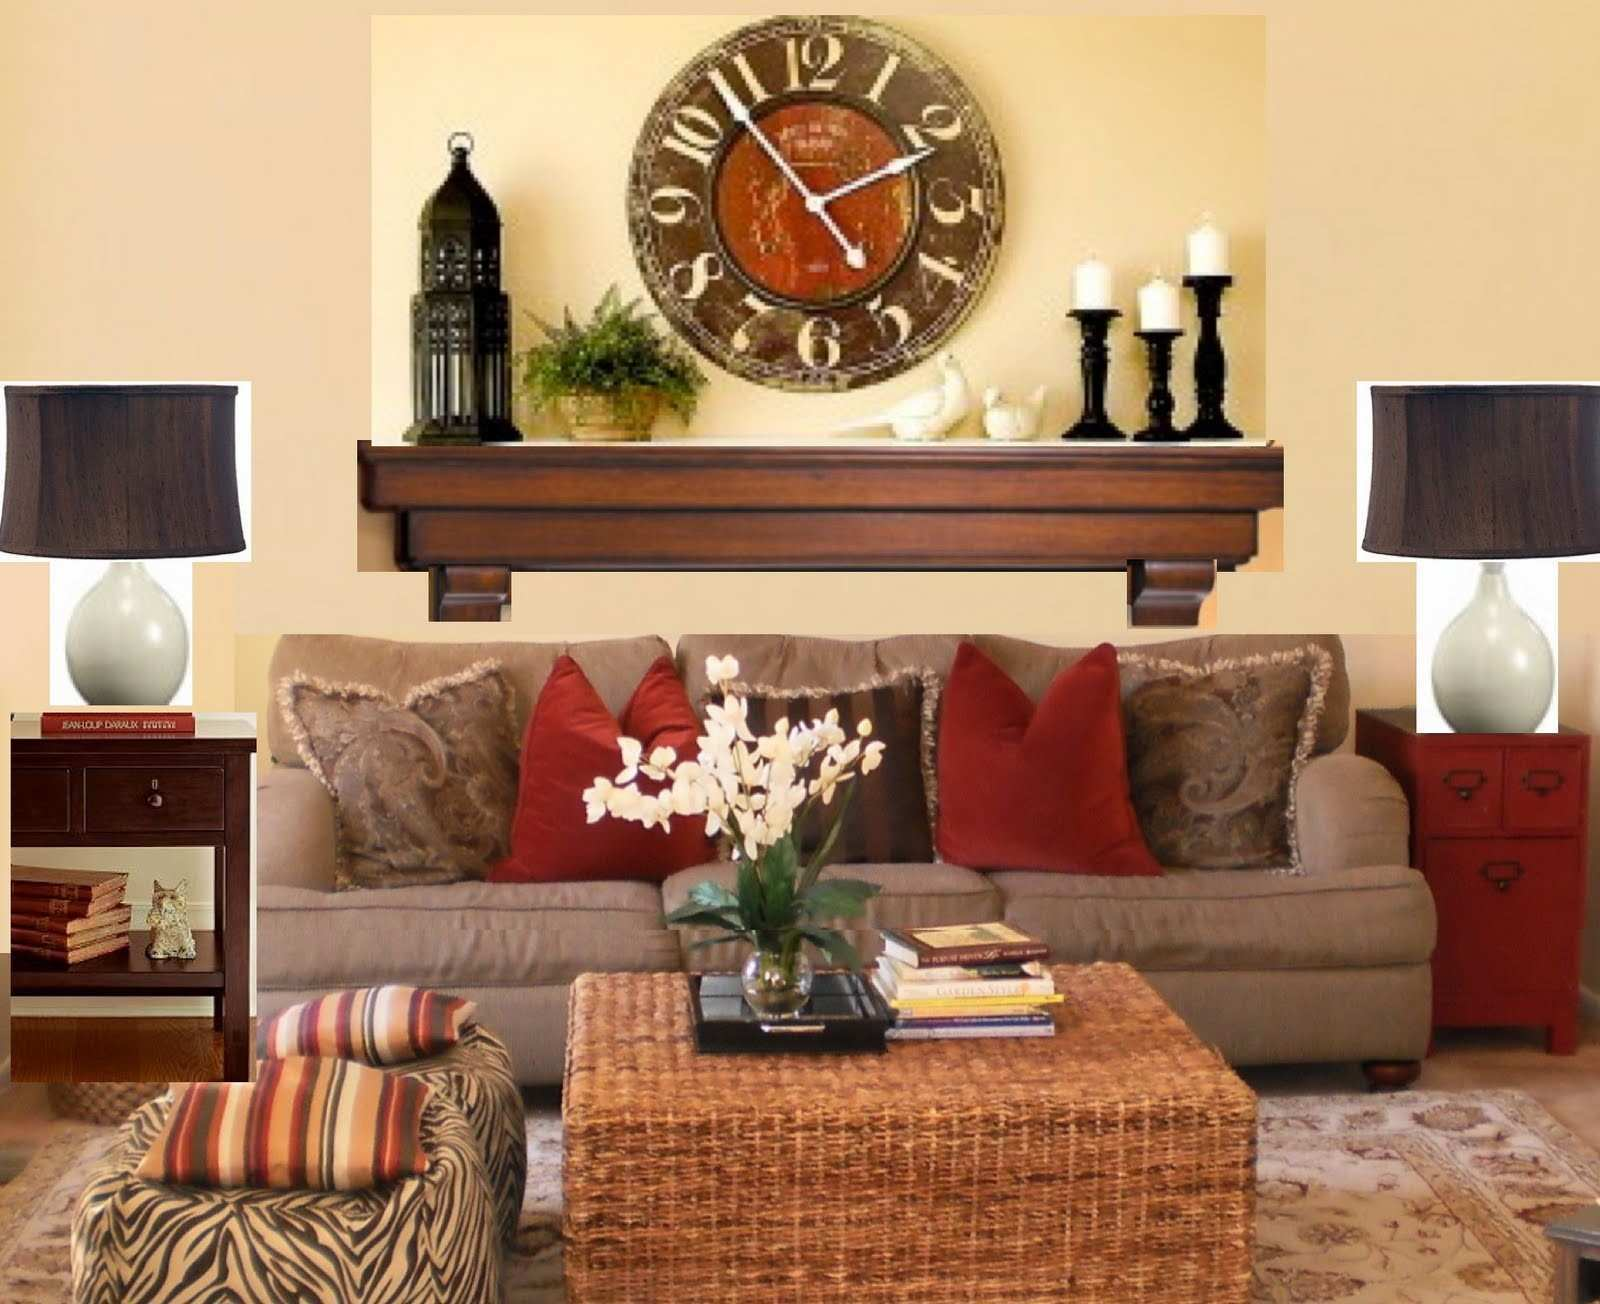 Pictures for Living Room Wall Best Of Stylish Living Room Wall Decor